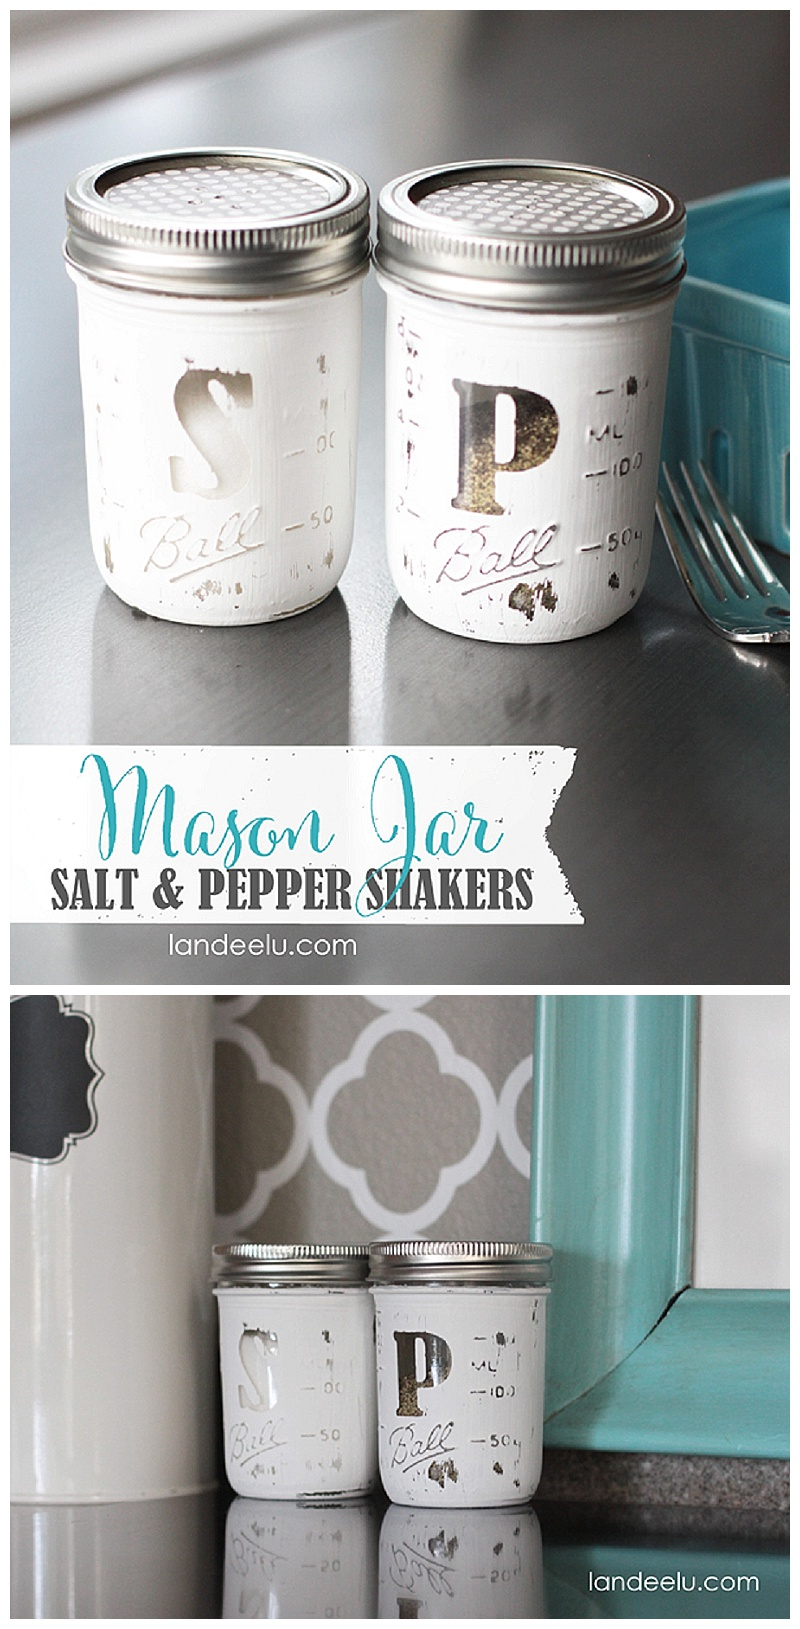 These salt and pepper mason jar shakers are white and look rustic.